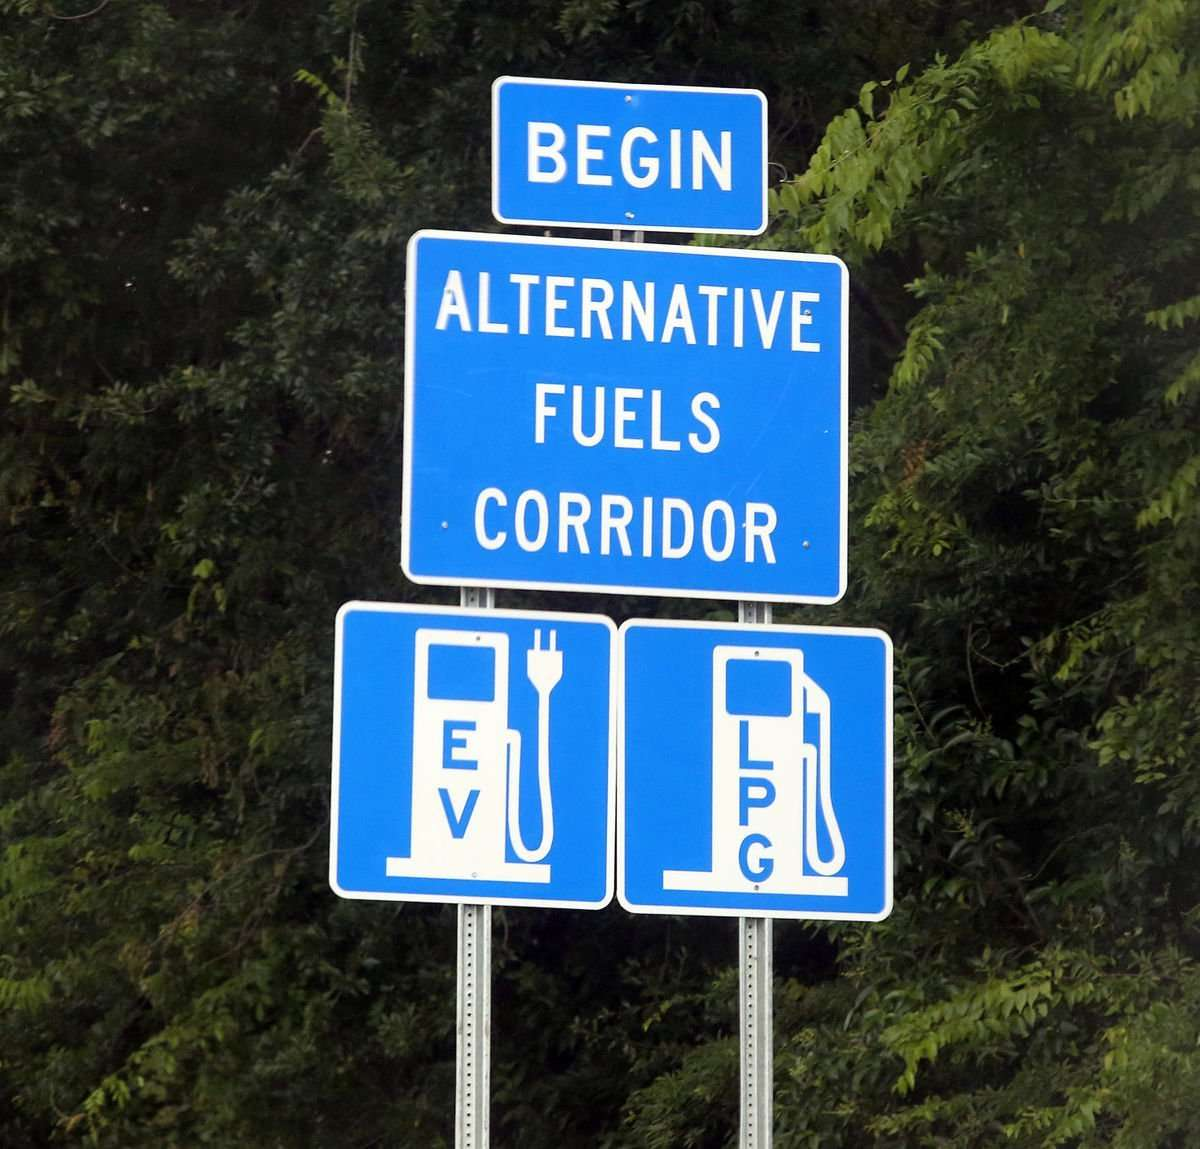 South Carolina leads in Southeast US with alt-fuel corridor signage